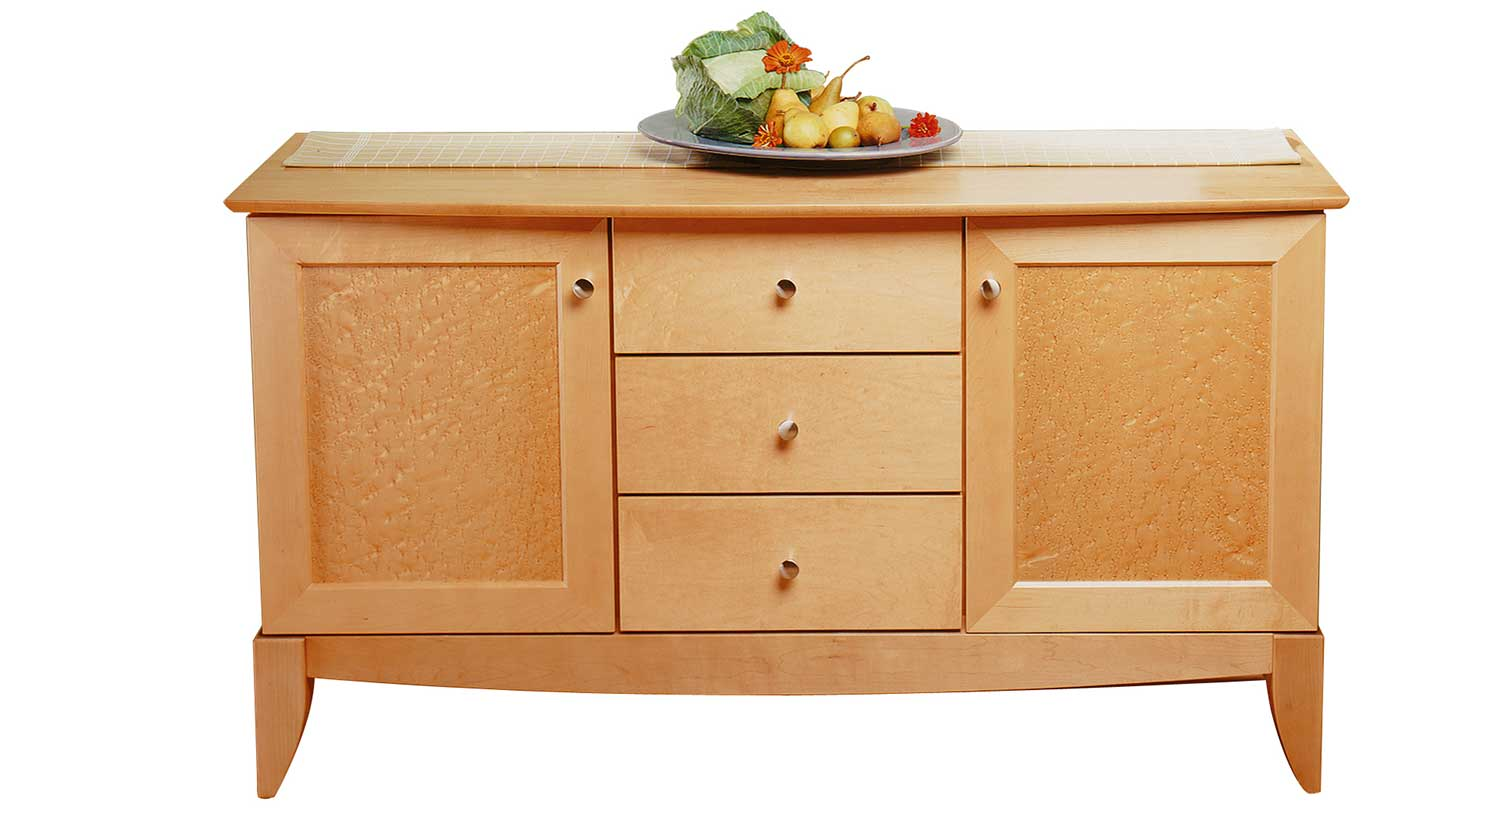 Circle Furniture - Hudson Buffet  Dining Storage Ma  Circle ...